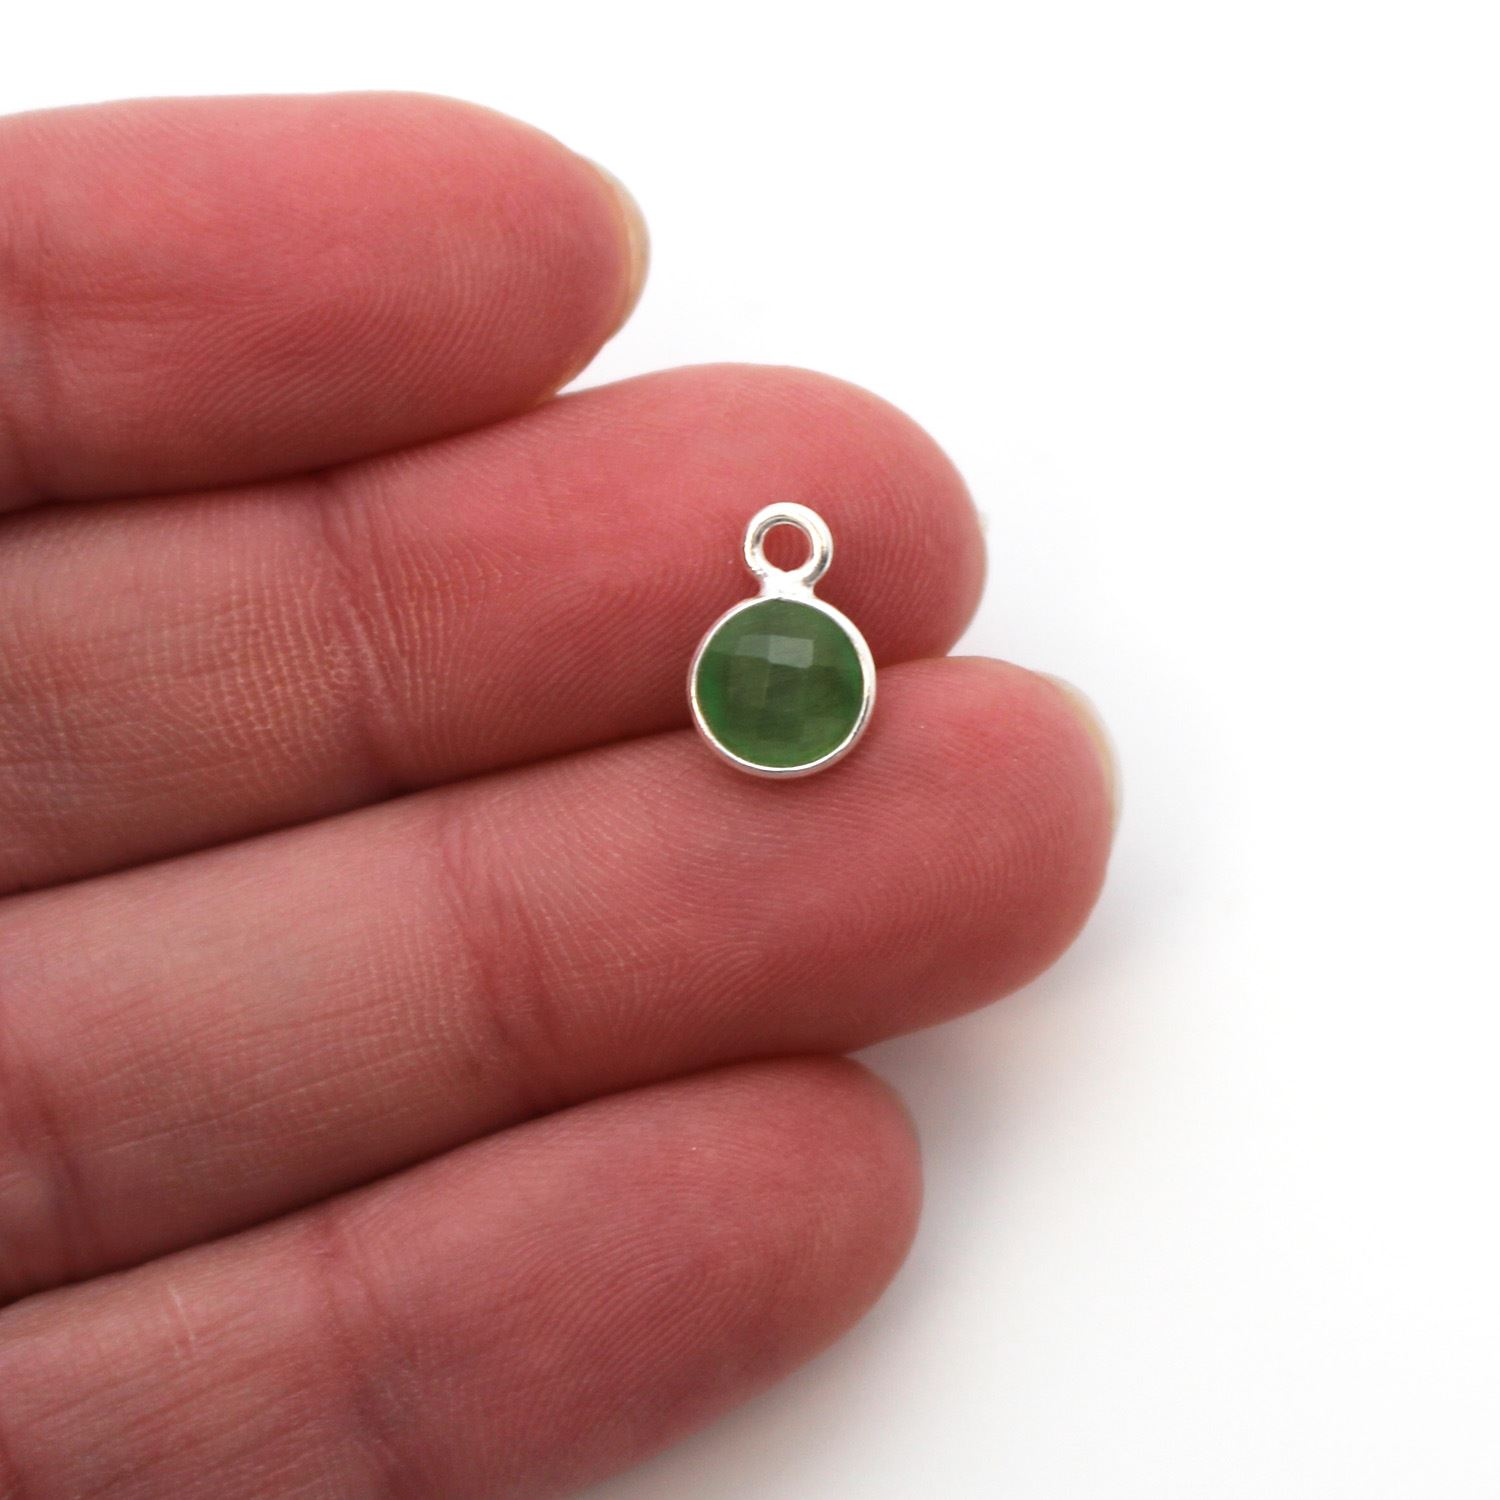 Bezel Gem Pendant-Sterling Silver-7mm Tiny Circle Shape - Green Monalisa (sold per 2 pieces)